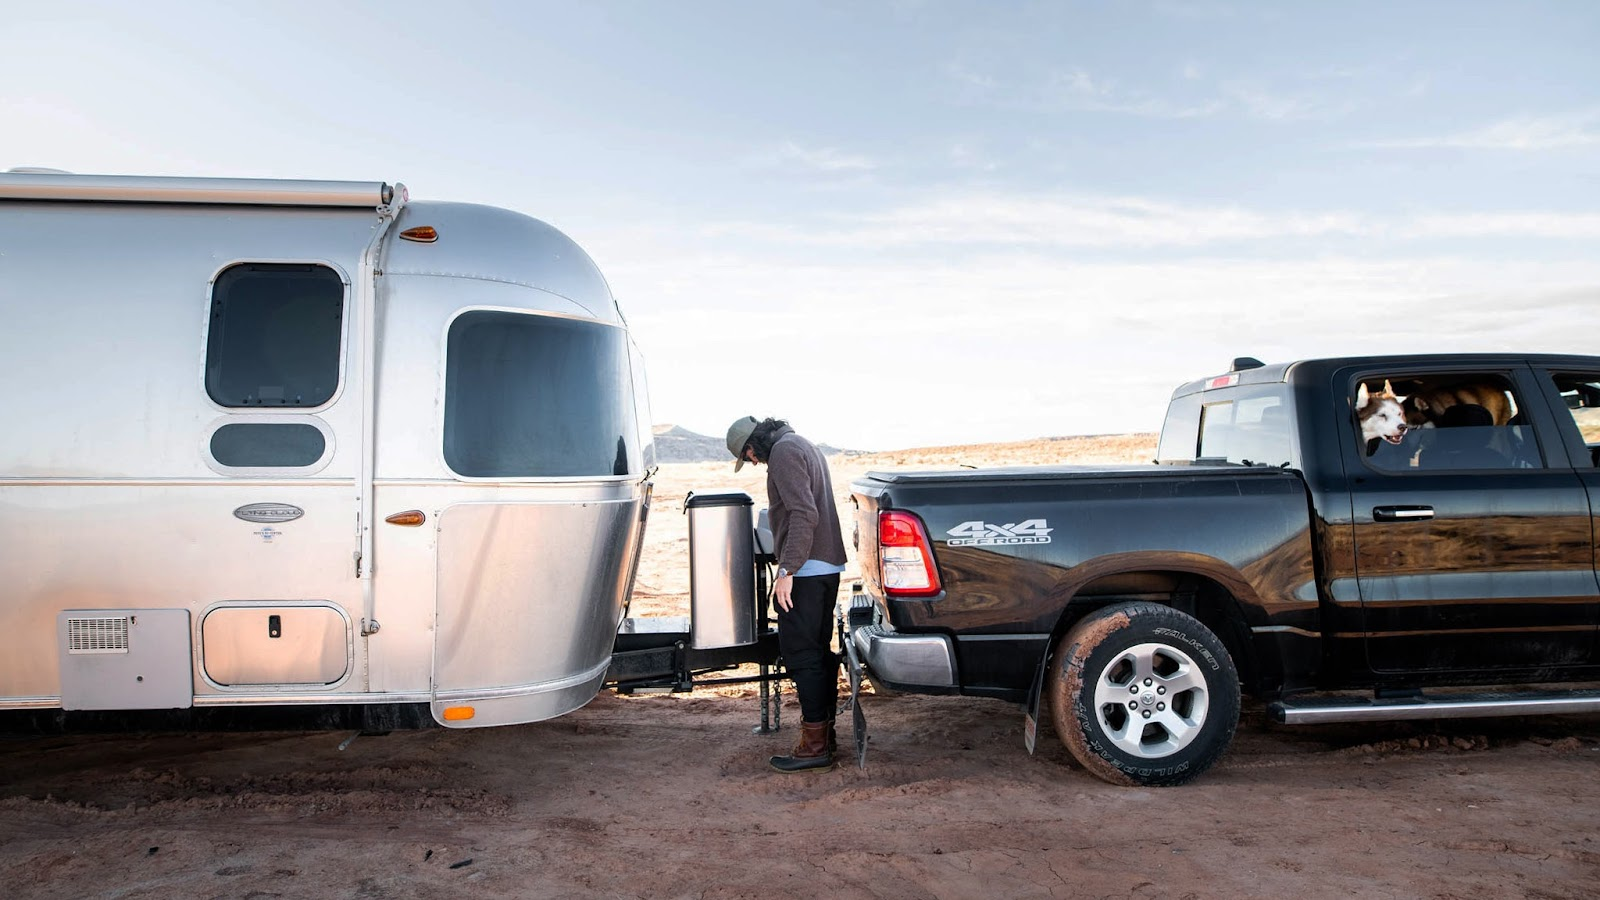 Which Class Of Trailer Hitch Is Best Suited?